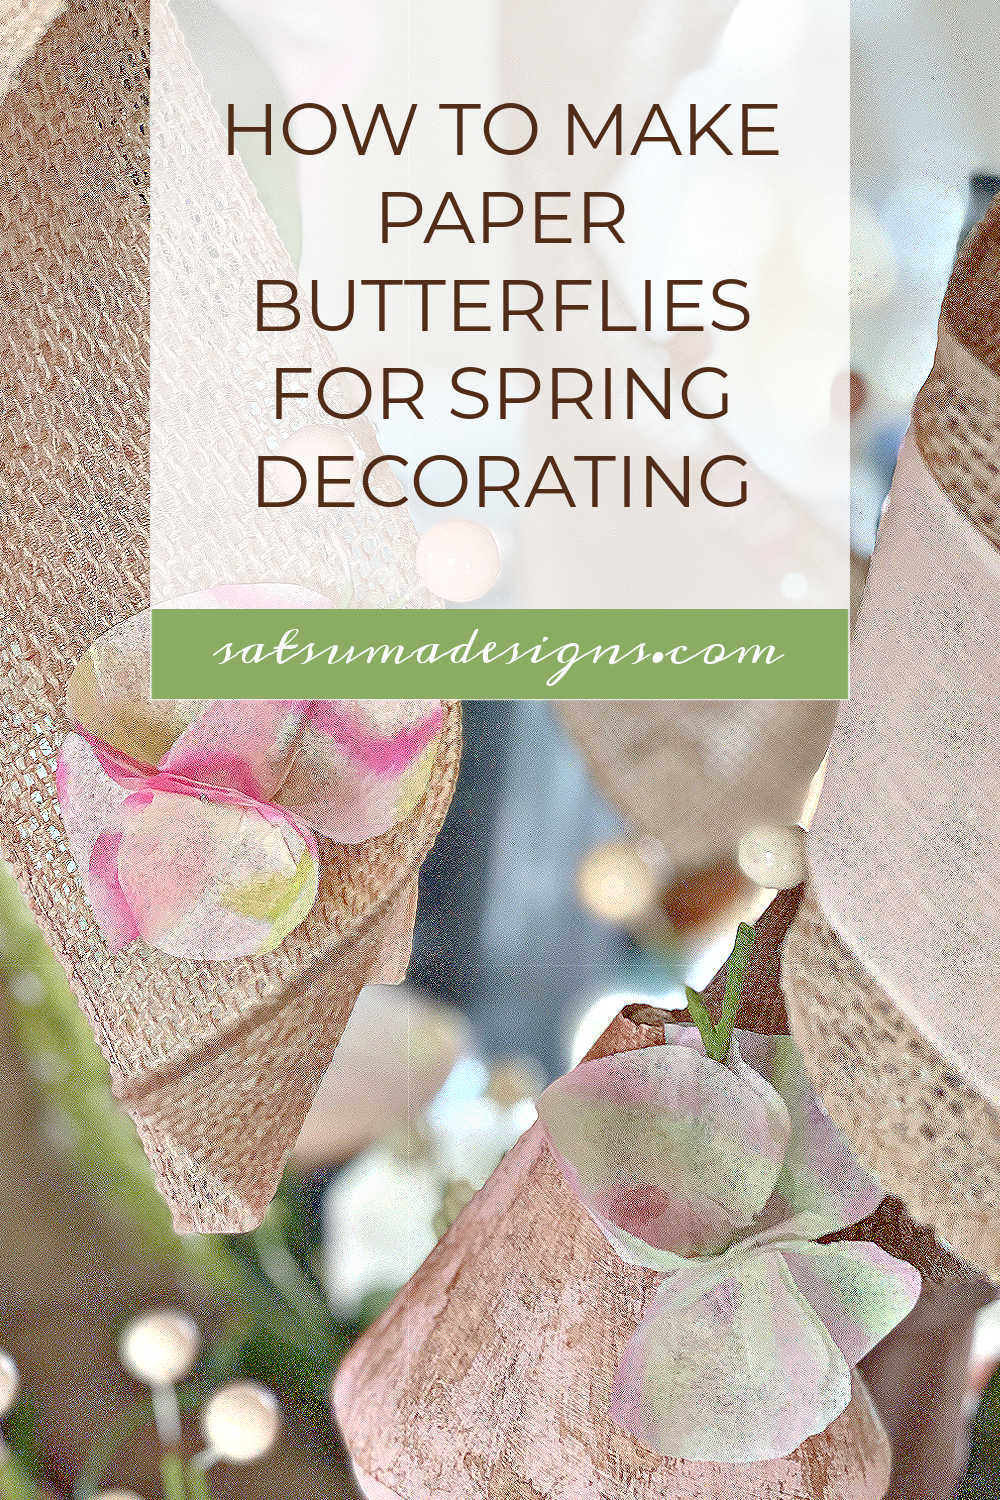 Discover how to easily make paper butterflies for spring decorating. This easy craft is great for kids to enjoy adding to gifts, sharing May Day baskets and decorating your home. Enjoy! #butterflies #papercrafts #easycrafts #craftsforkids